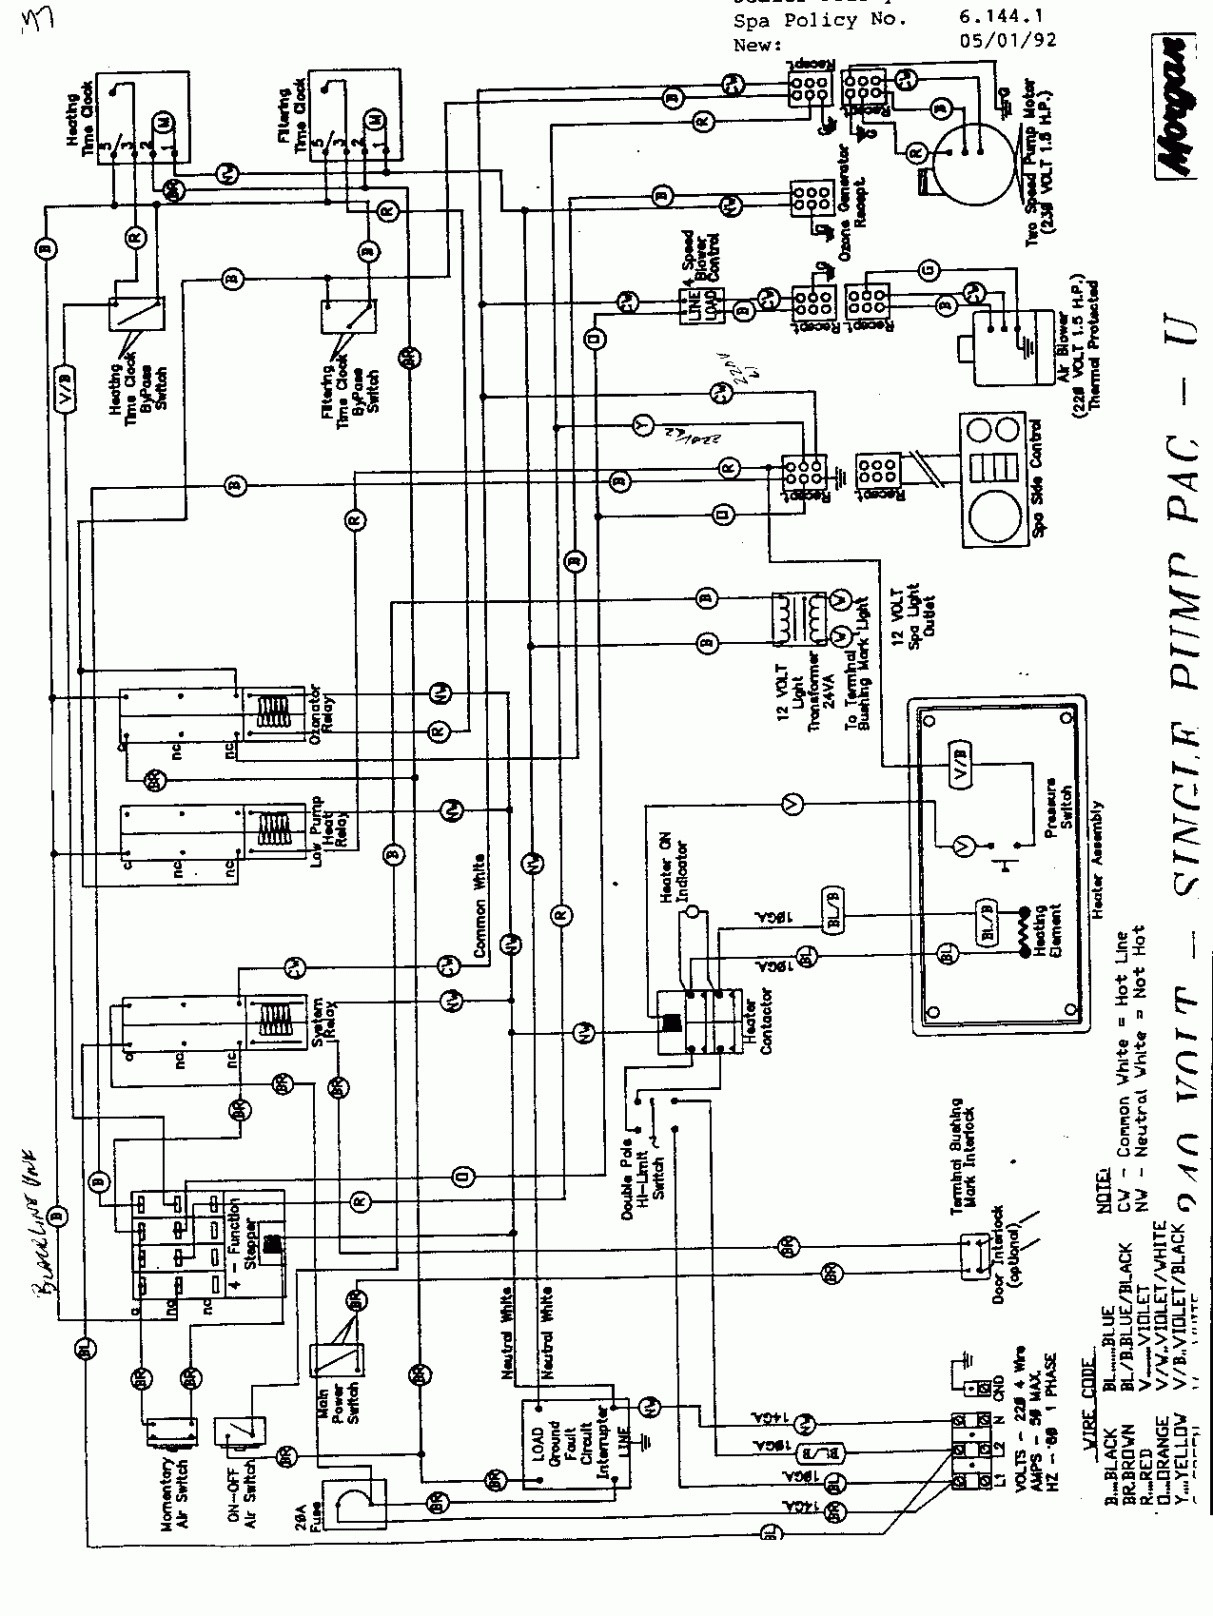 vita spa l200 wiring diagram Download-great lakes spa wiring diagram coleman spas with hot tub wire for rh natebird me Hot 7-n